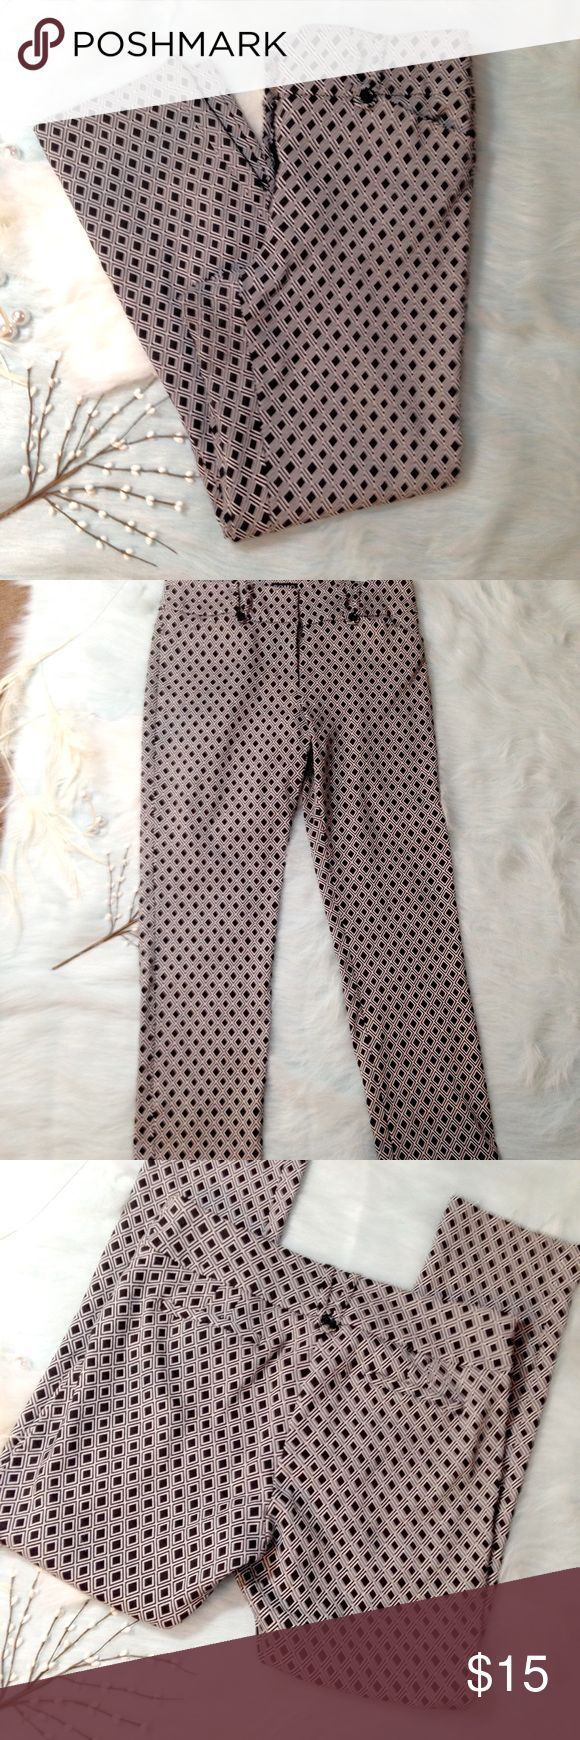 """B&W Diamond Pattern Sz 10 Capri Trouser Pants Super cool SOHO Apparel Ltd Sz 10 Trouser Pants. Double belt loops, welt back pockets. Good used condition. Some wear on the inseam and inside button is missing (center fly clasp in tact). 46% polyester 38% rayon 12% Nylon 4% spandex.  Super comfortable. 34"""" waist. 37"""" Length. 27 1/2"""" inseam Soho Apparel Pants Straight Leg"""